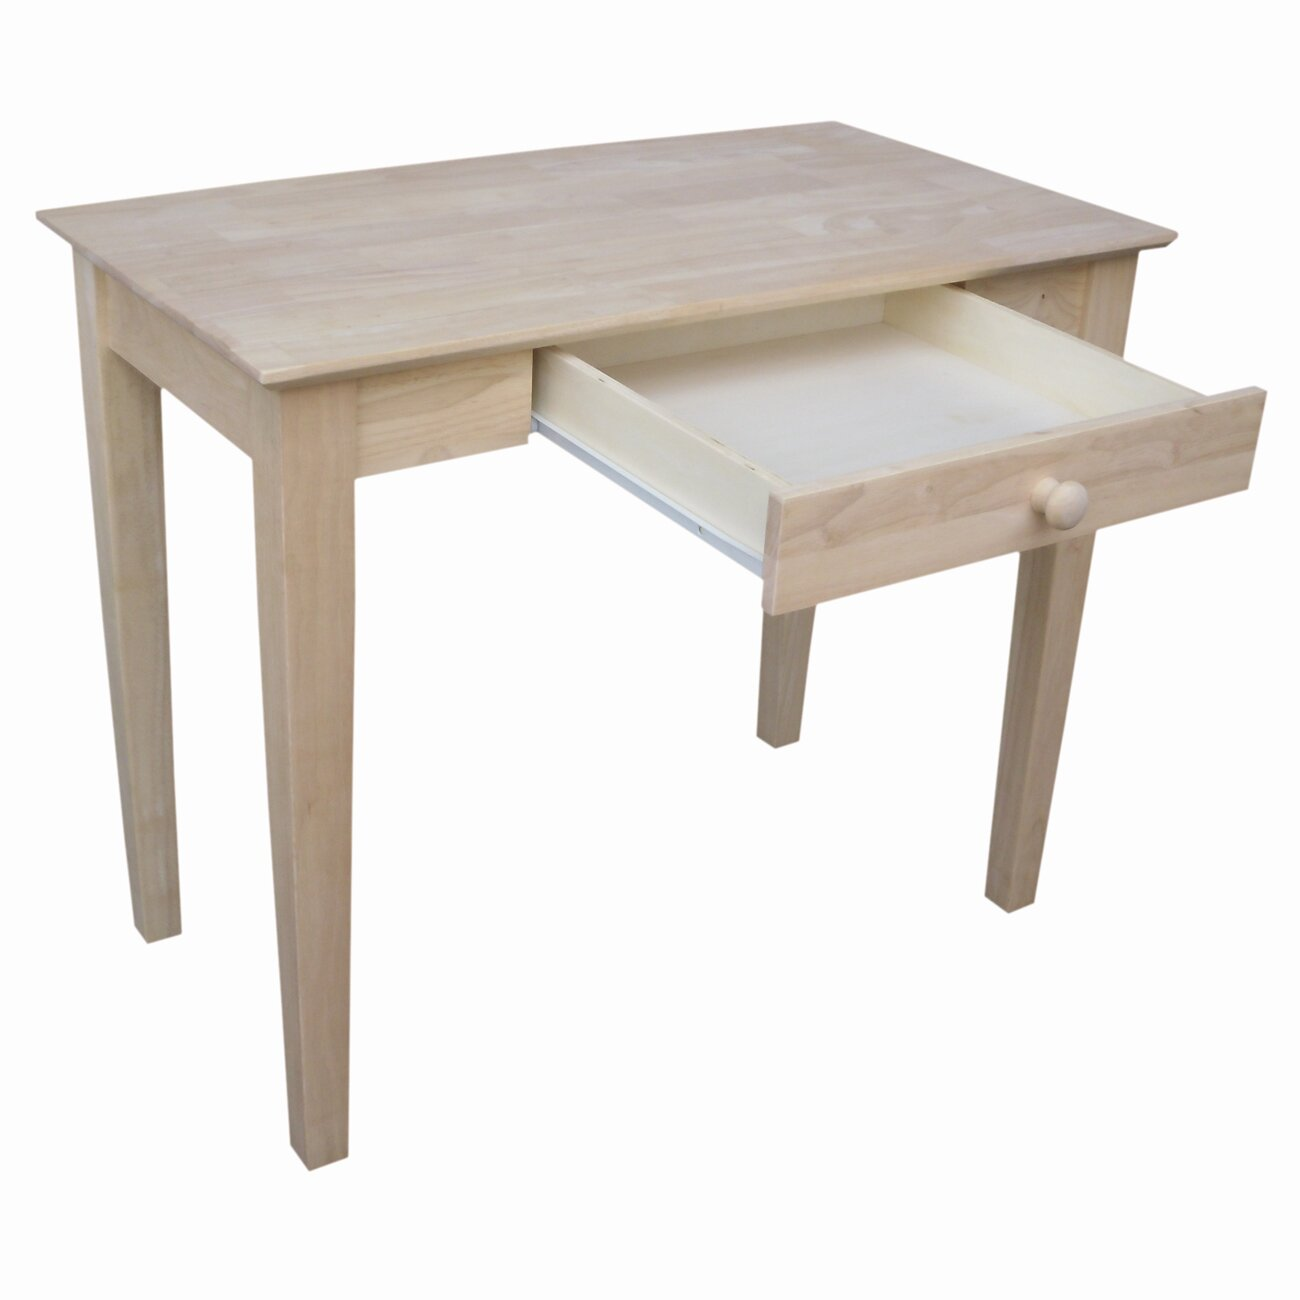 unfinished writing desk Buy international concepts of-41 writing desk, unfinished: home office desks - amazoncom free delivery possible on eligible purchases.